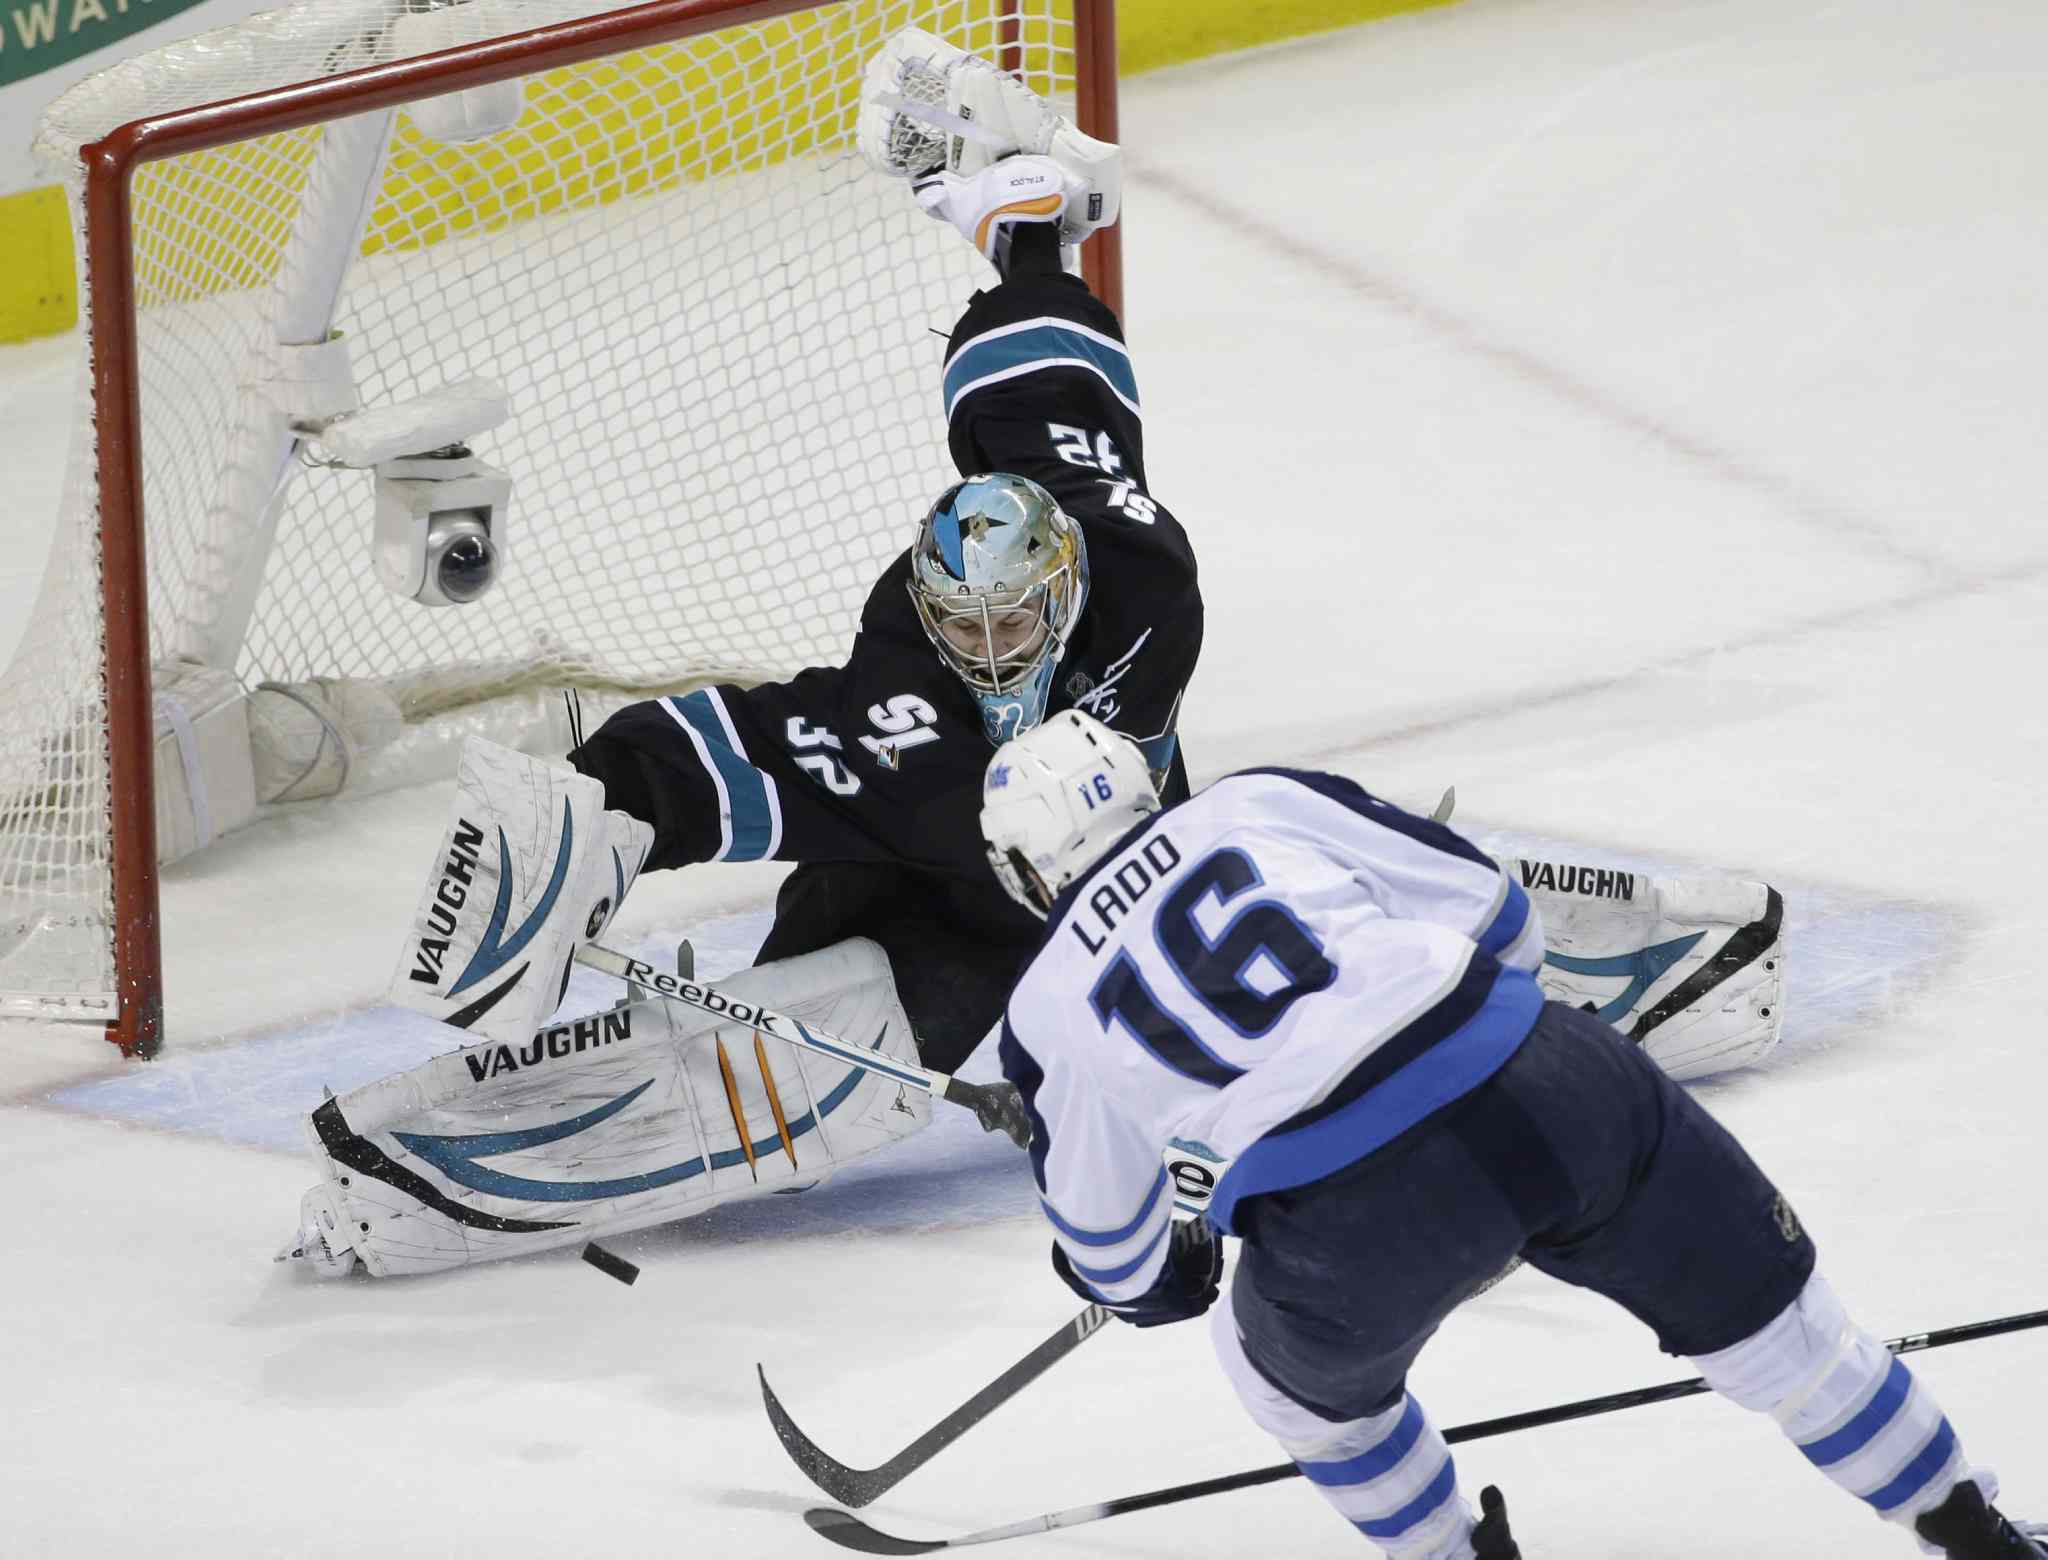 San Jose Sharks' goalie Alex Stalock (32) stops a shot by Winnipeg Jets' Andrew Ladd (16) during the first period Thursday's NHL hockey game in San Jose, Calif.